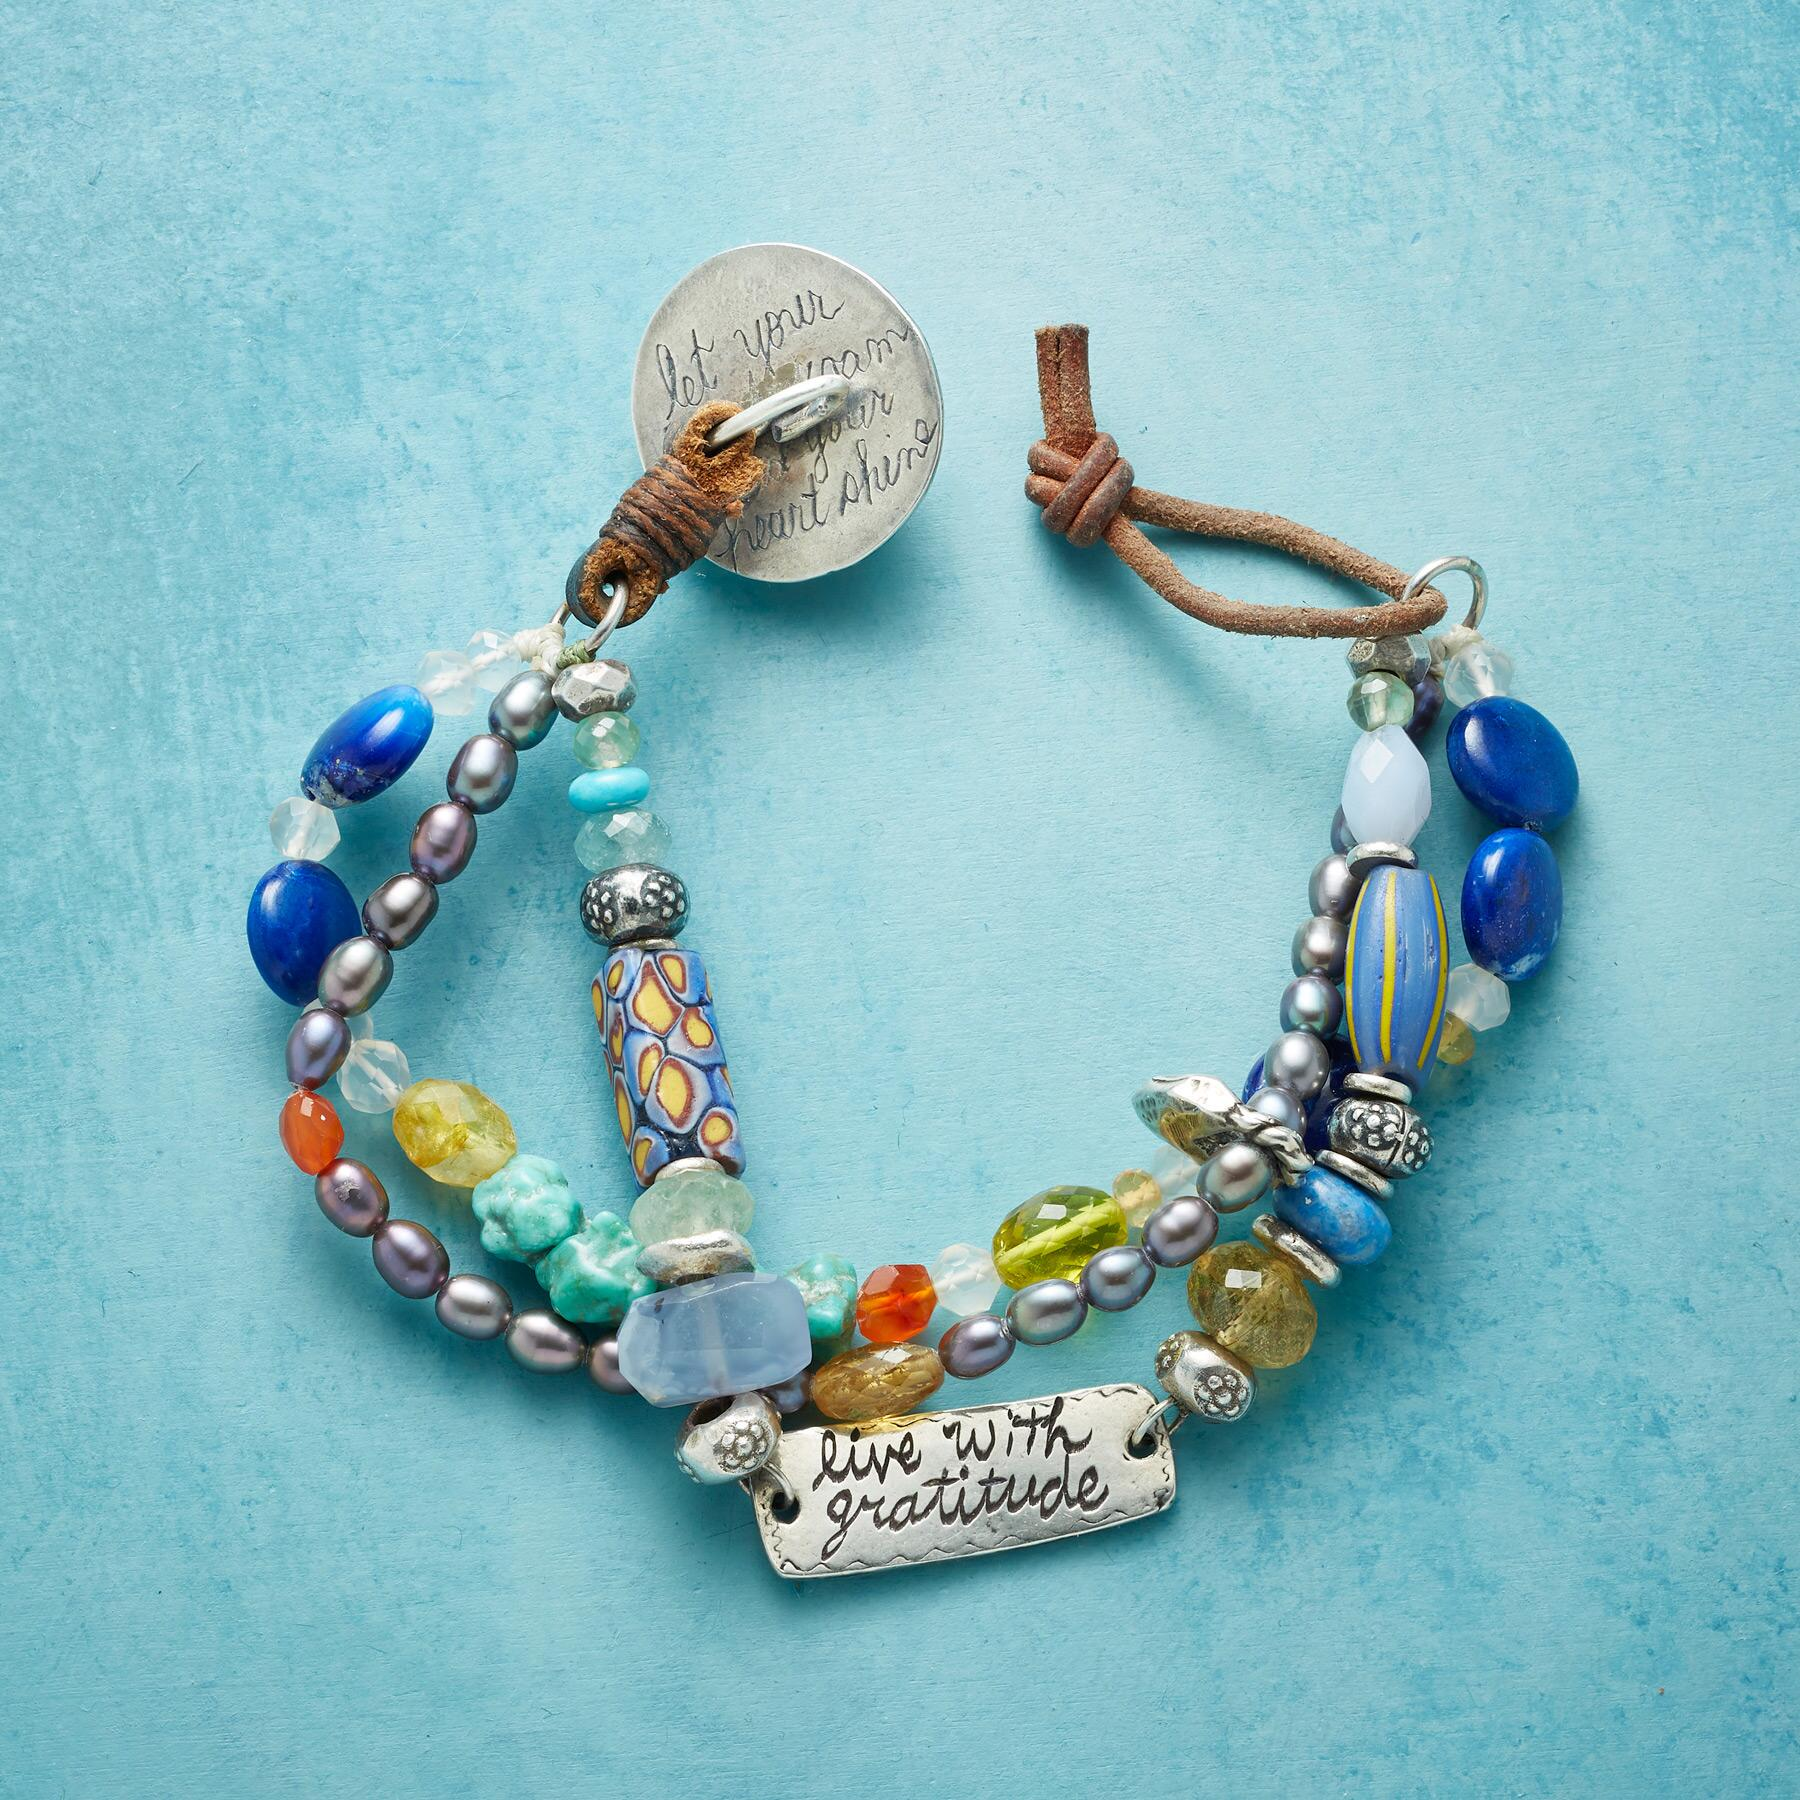 JOYFUL JOURNEY BRACELET: View 2